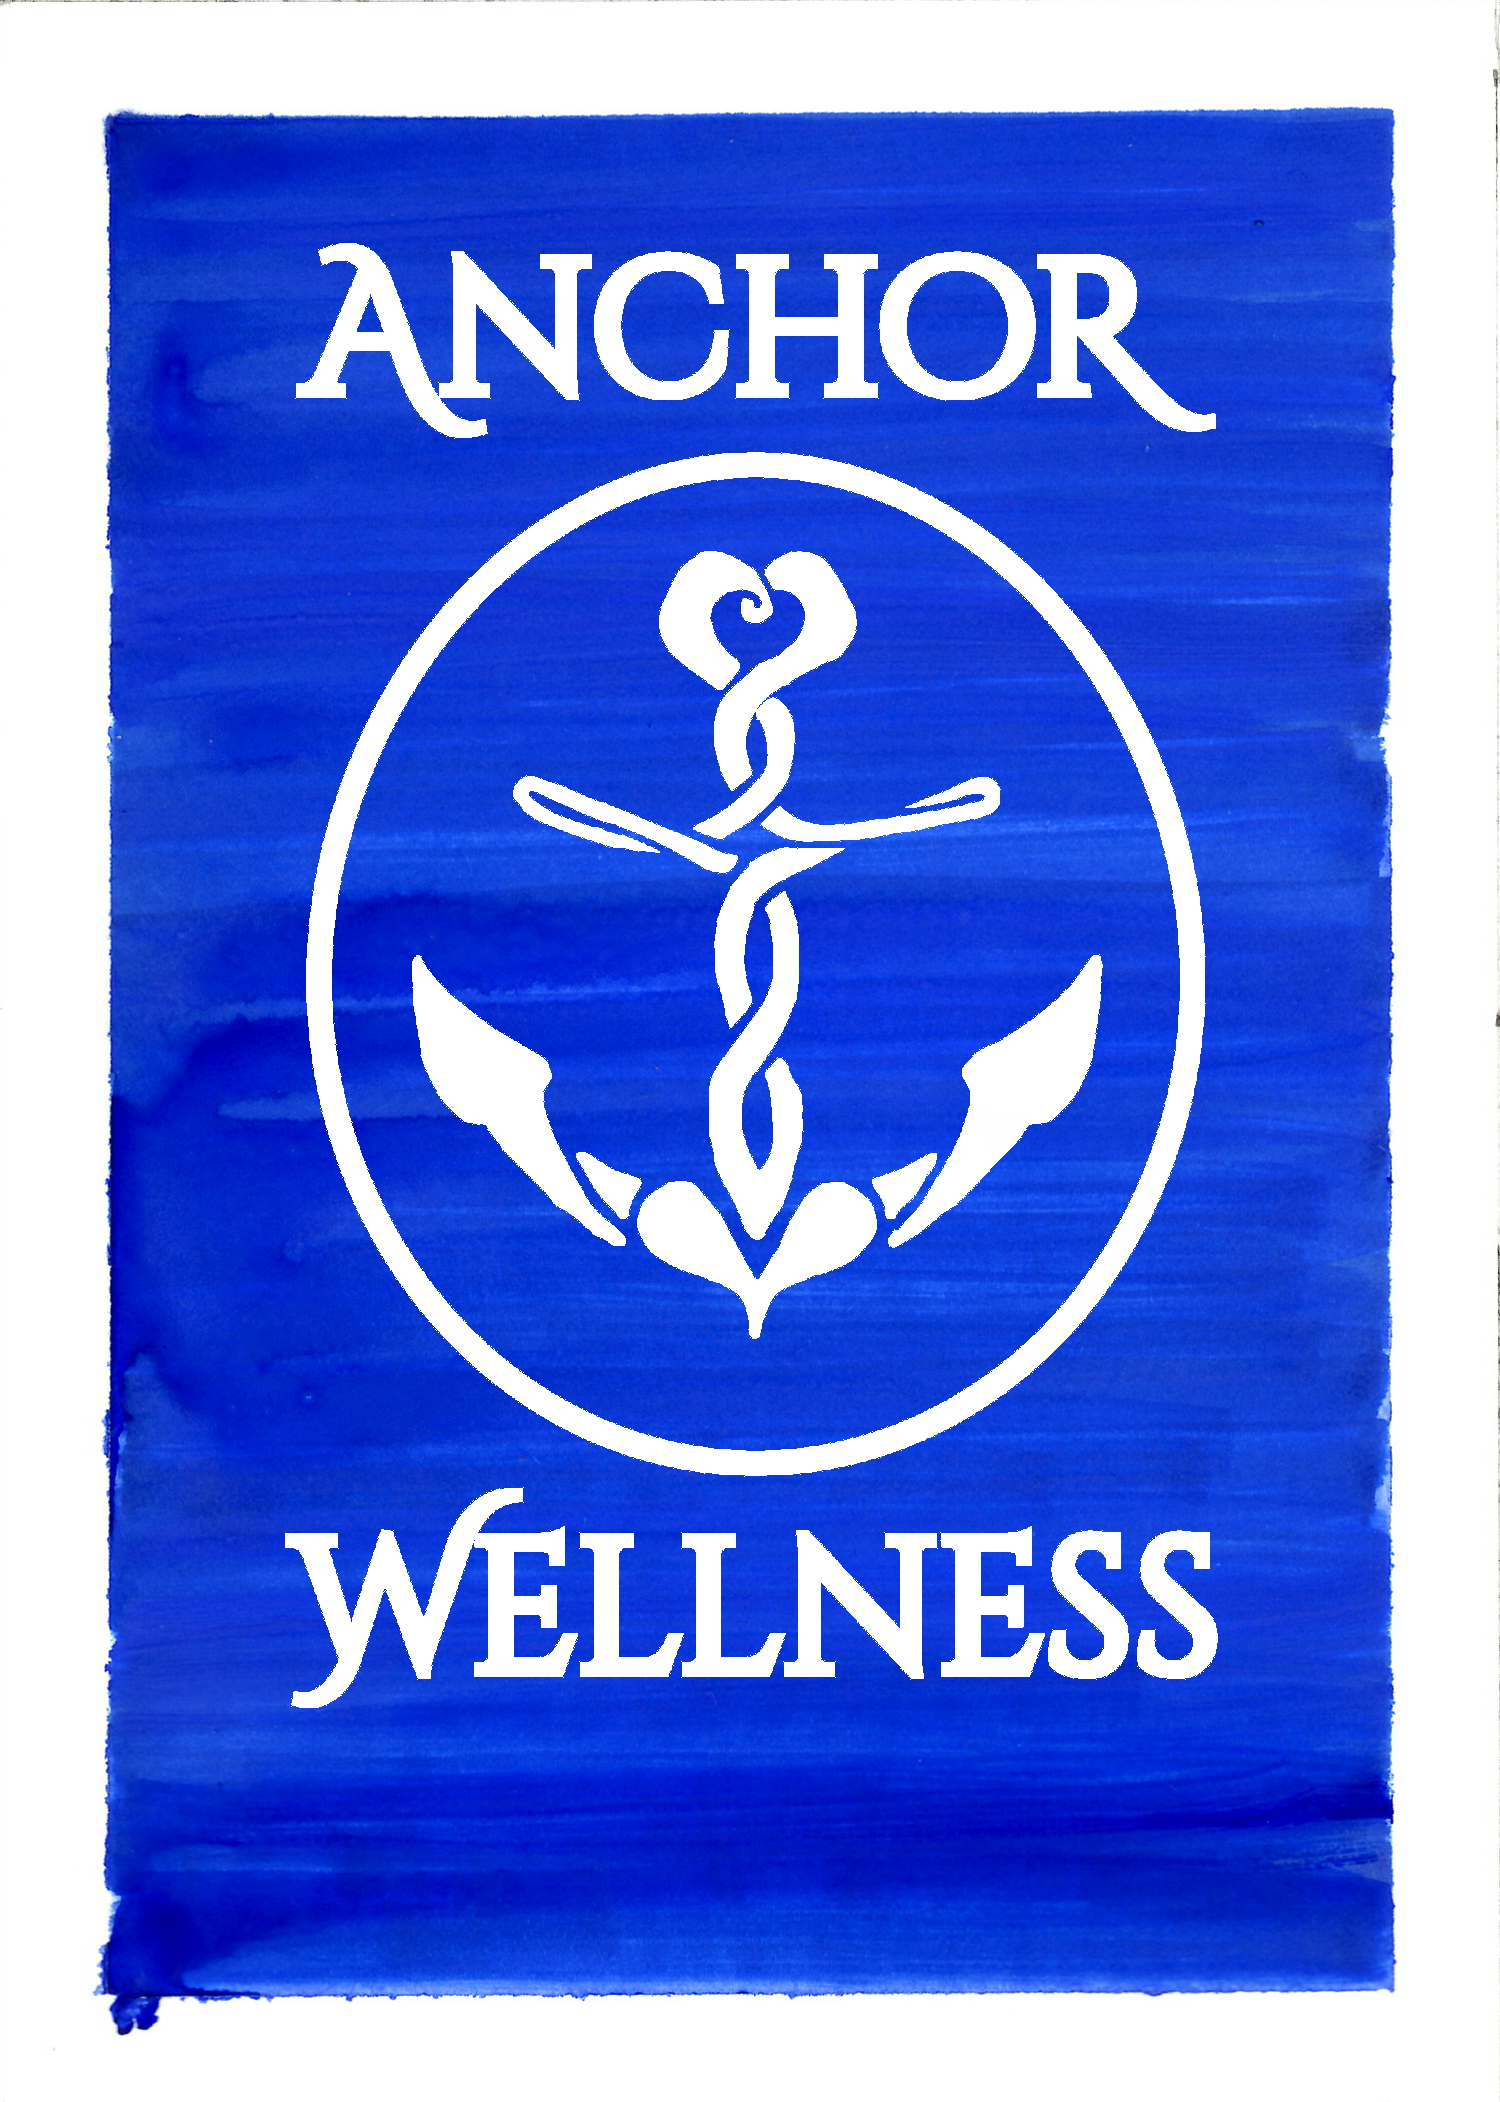 Copyright 2015 Anchor Wellness